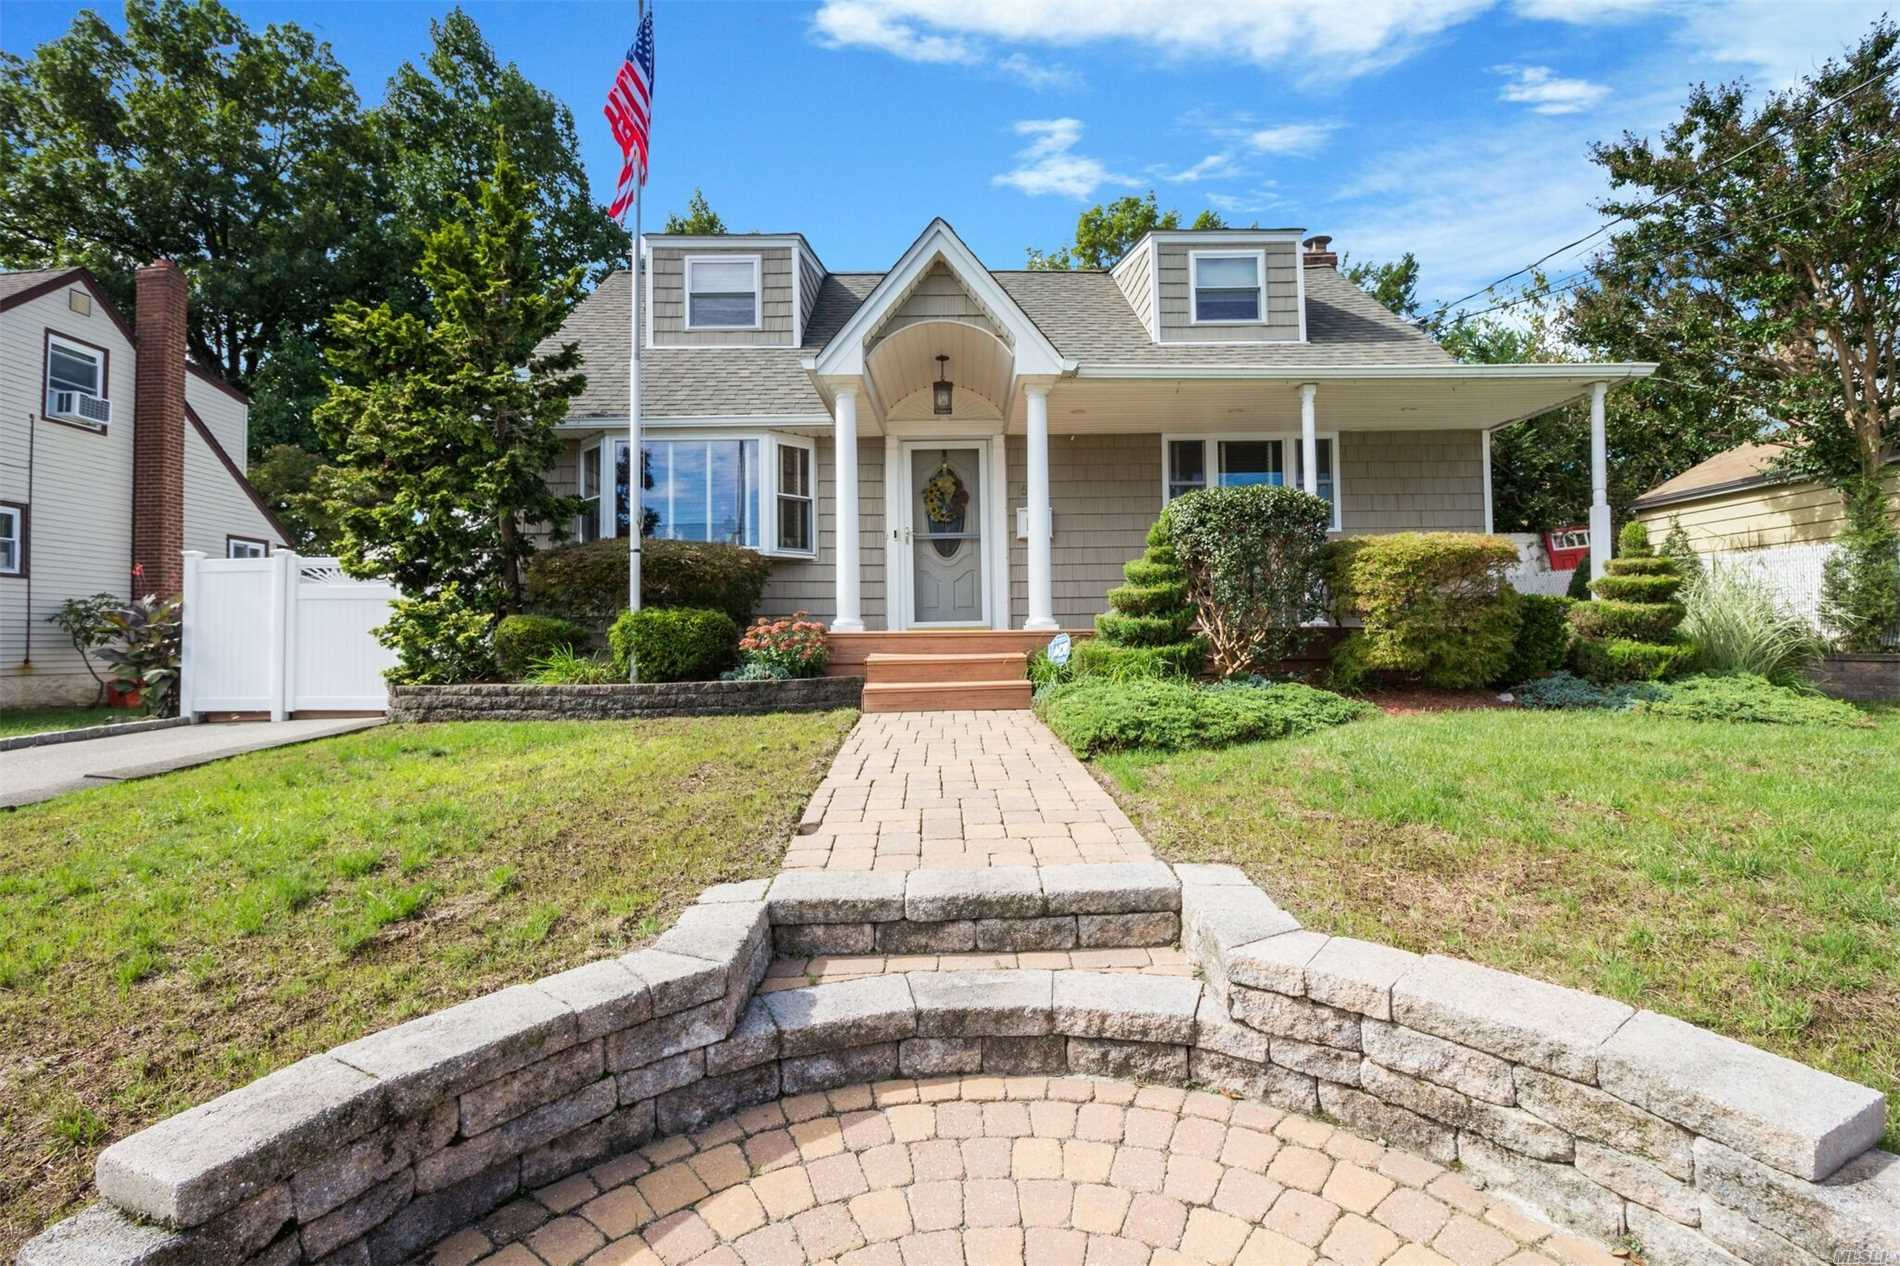 This Is The One You Have Been Waiting For! Perfectly Updated Expanded Cape In Prime Mid Block Location. Park Like Property. Updates Galore. Move In Condition. From The Finished Basement To The Granite Eik This One Has It All.